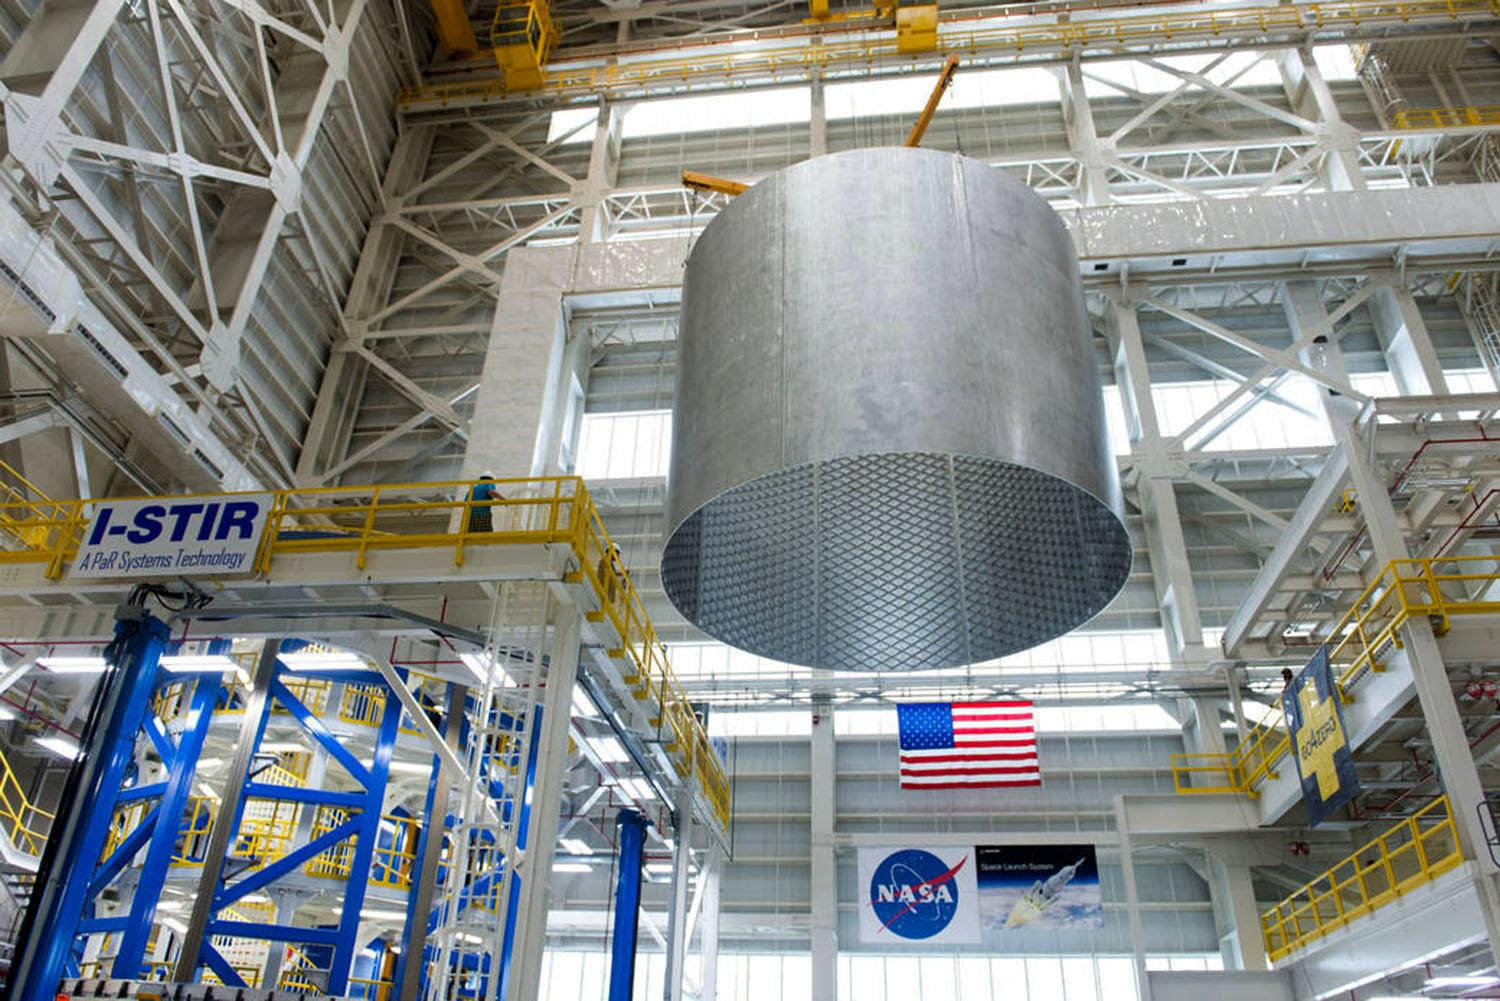 Welding large cylinders for space vehicles is done differently on the ground, photo shows Engineers at NASA's Michoud Assembly Facility transfer a 22-foot-tall barrel section of the SLS core stage from the Vertical Weld Center. The barrel section, above, will be used for the liquid hydrogen tank, which will help power the SLS rocket out of Earth's orbit. Image credit: NASA/Michoud